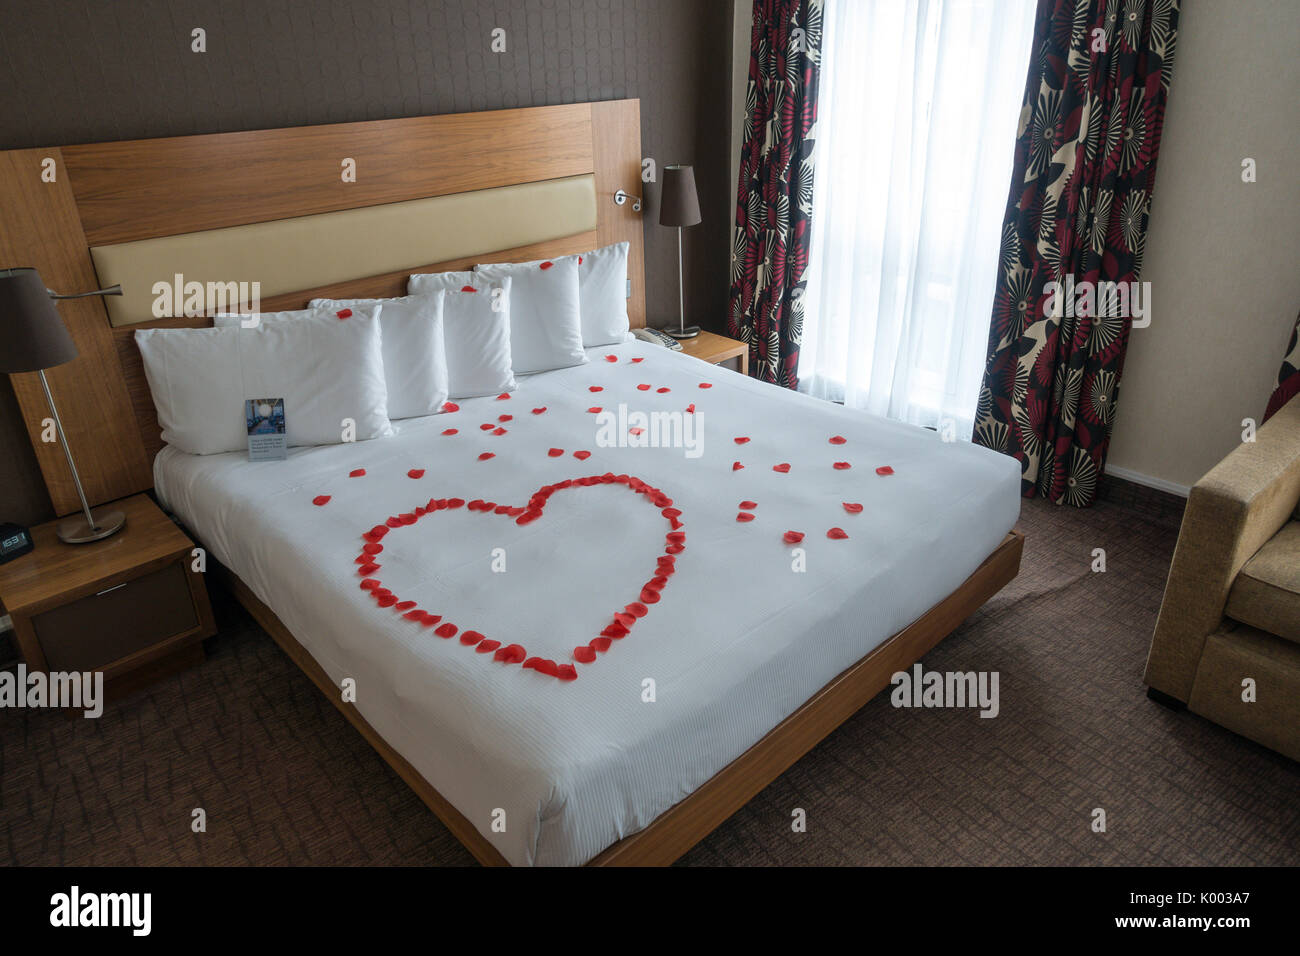 Camere Da Letto Romantiche Con Petali Di Rosa : Rose petal bed immagini & rose petal bed fotos stock alamy